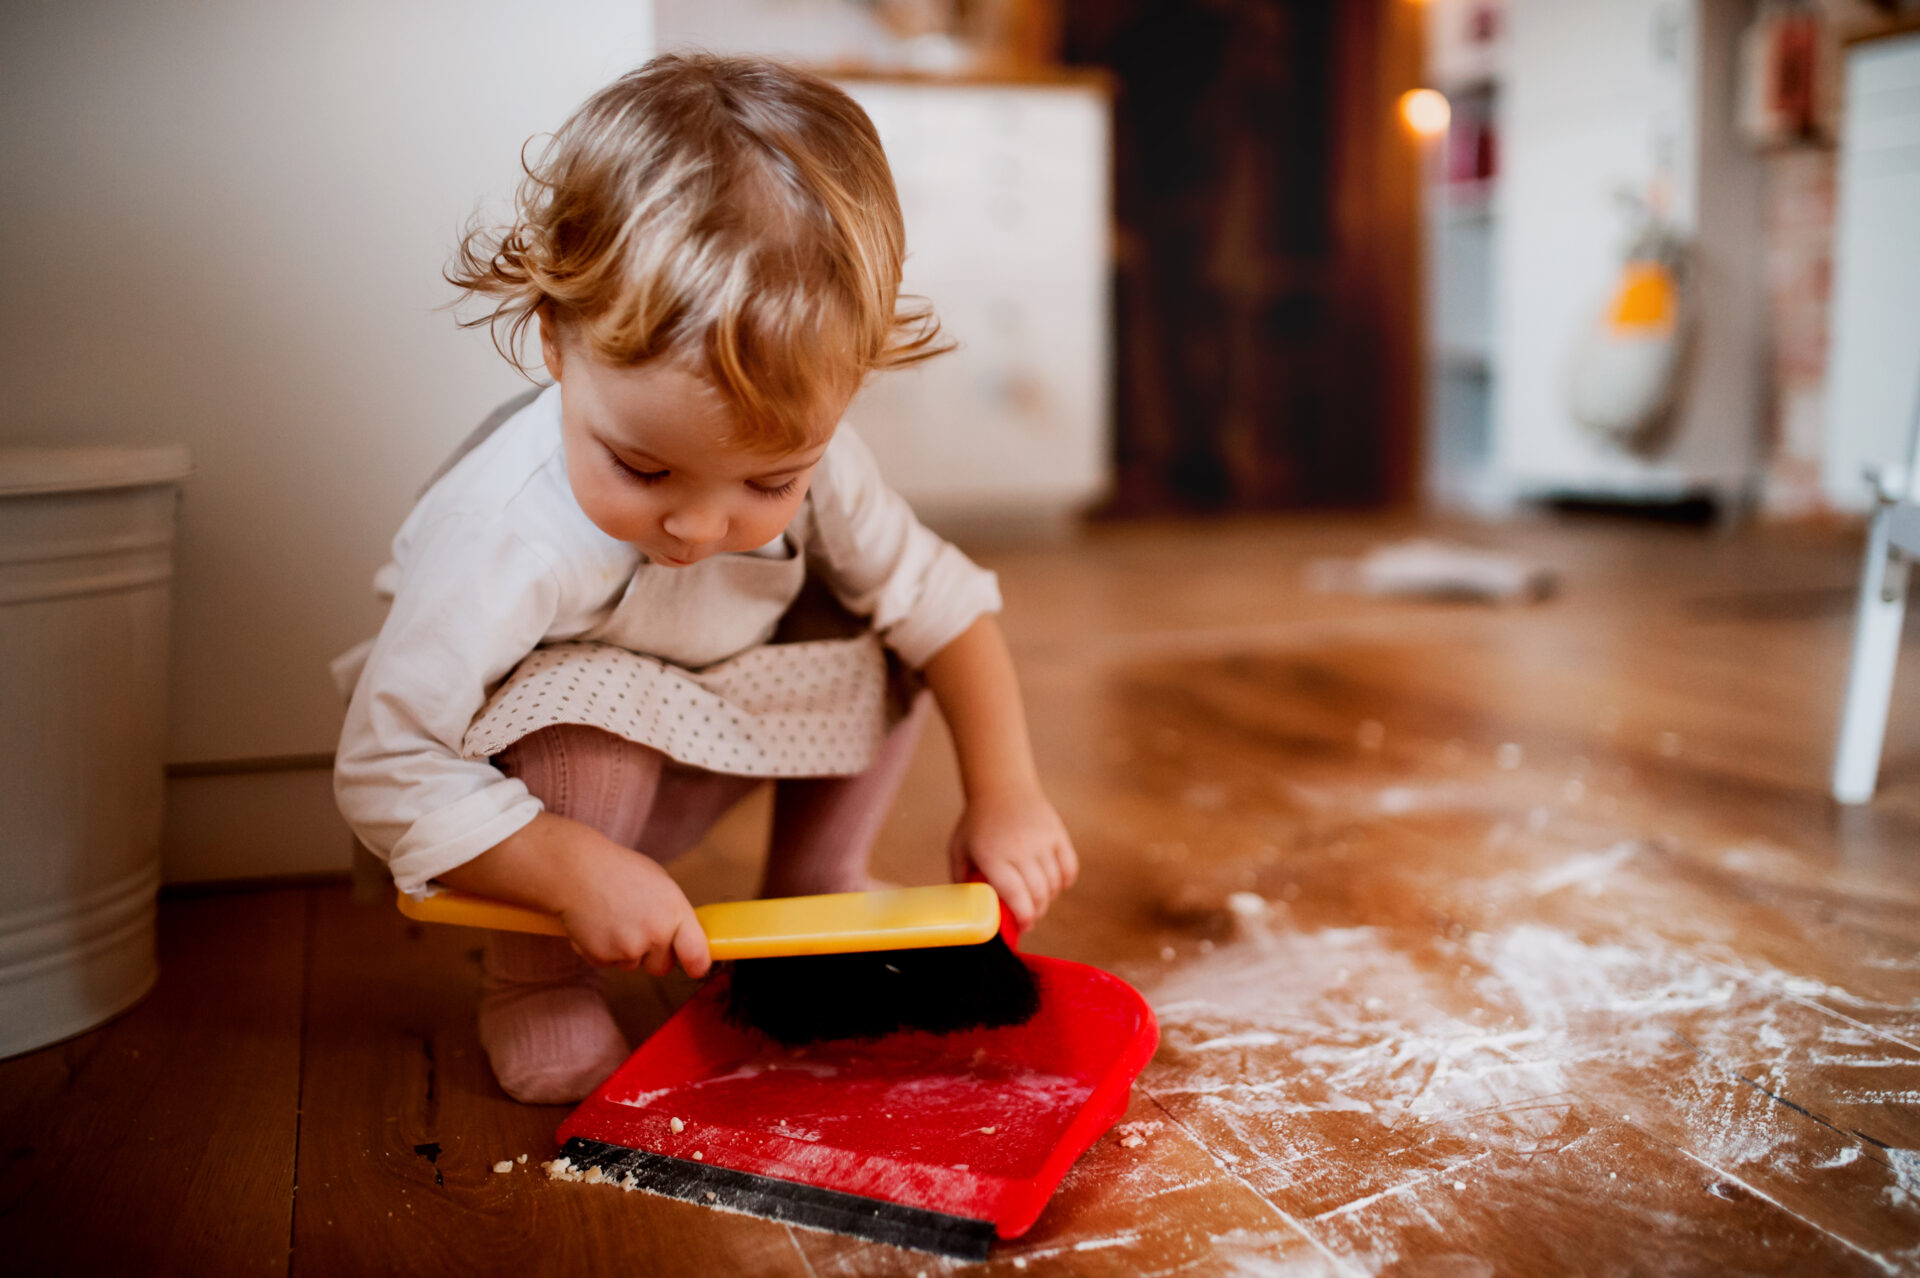 child sweeping up flour from floor as part of natural and logical consequences.